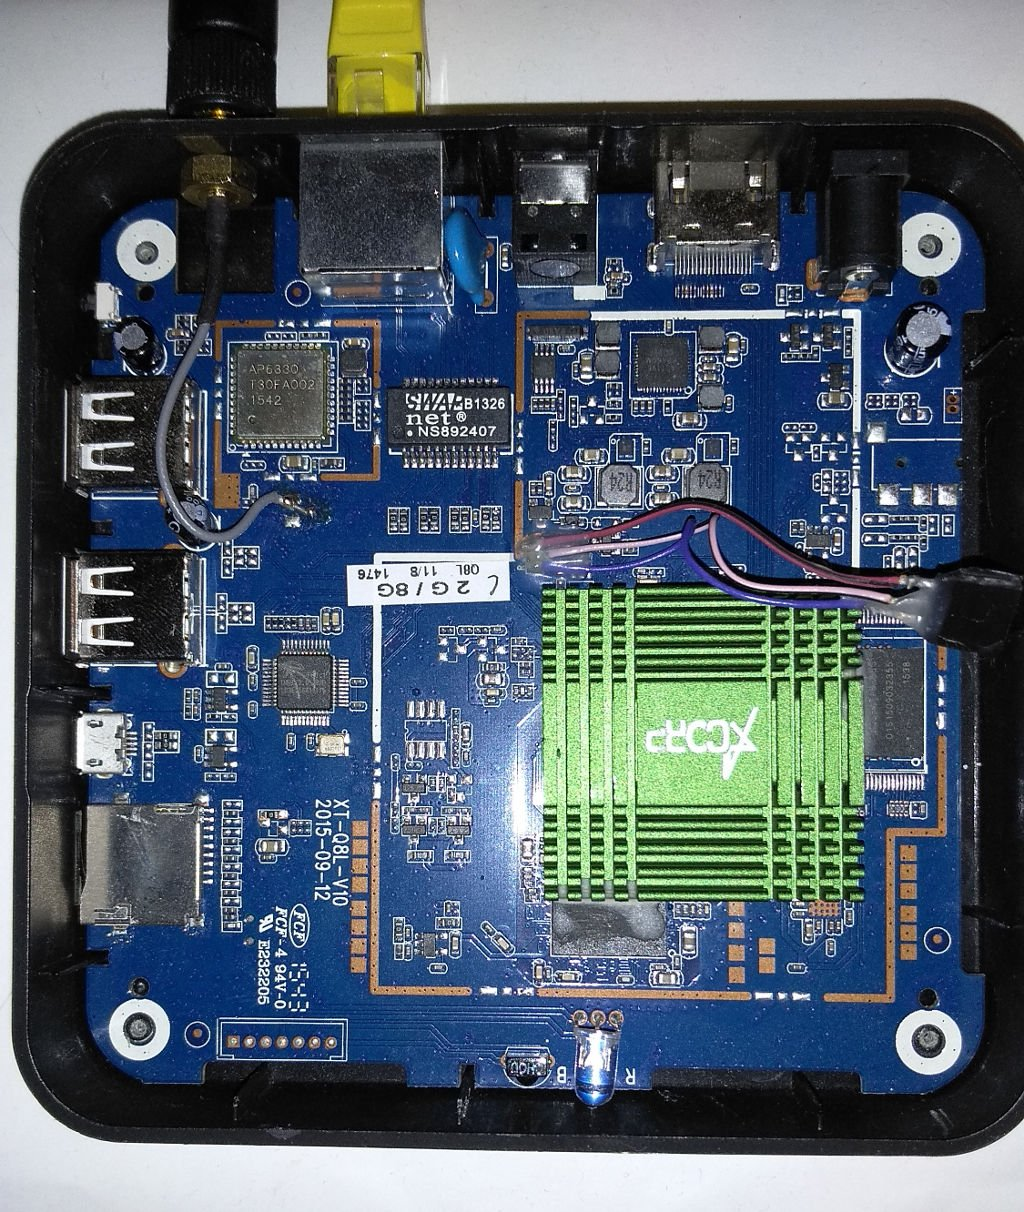 CSC Armbian for RK3288 TV Box boards (Q8) - TV boxes